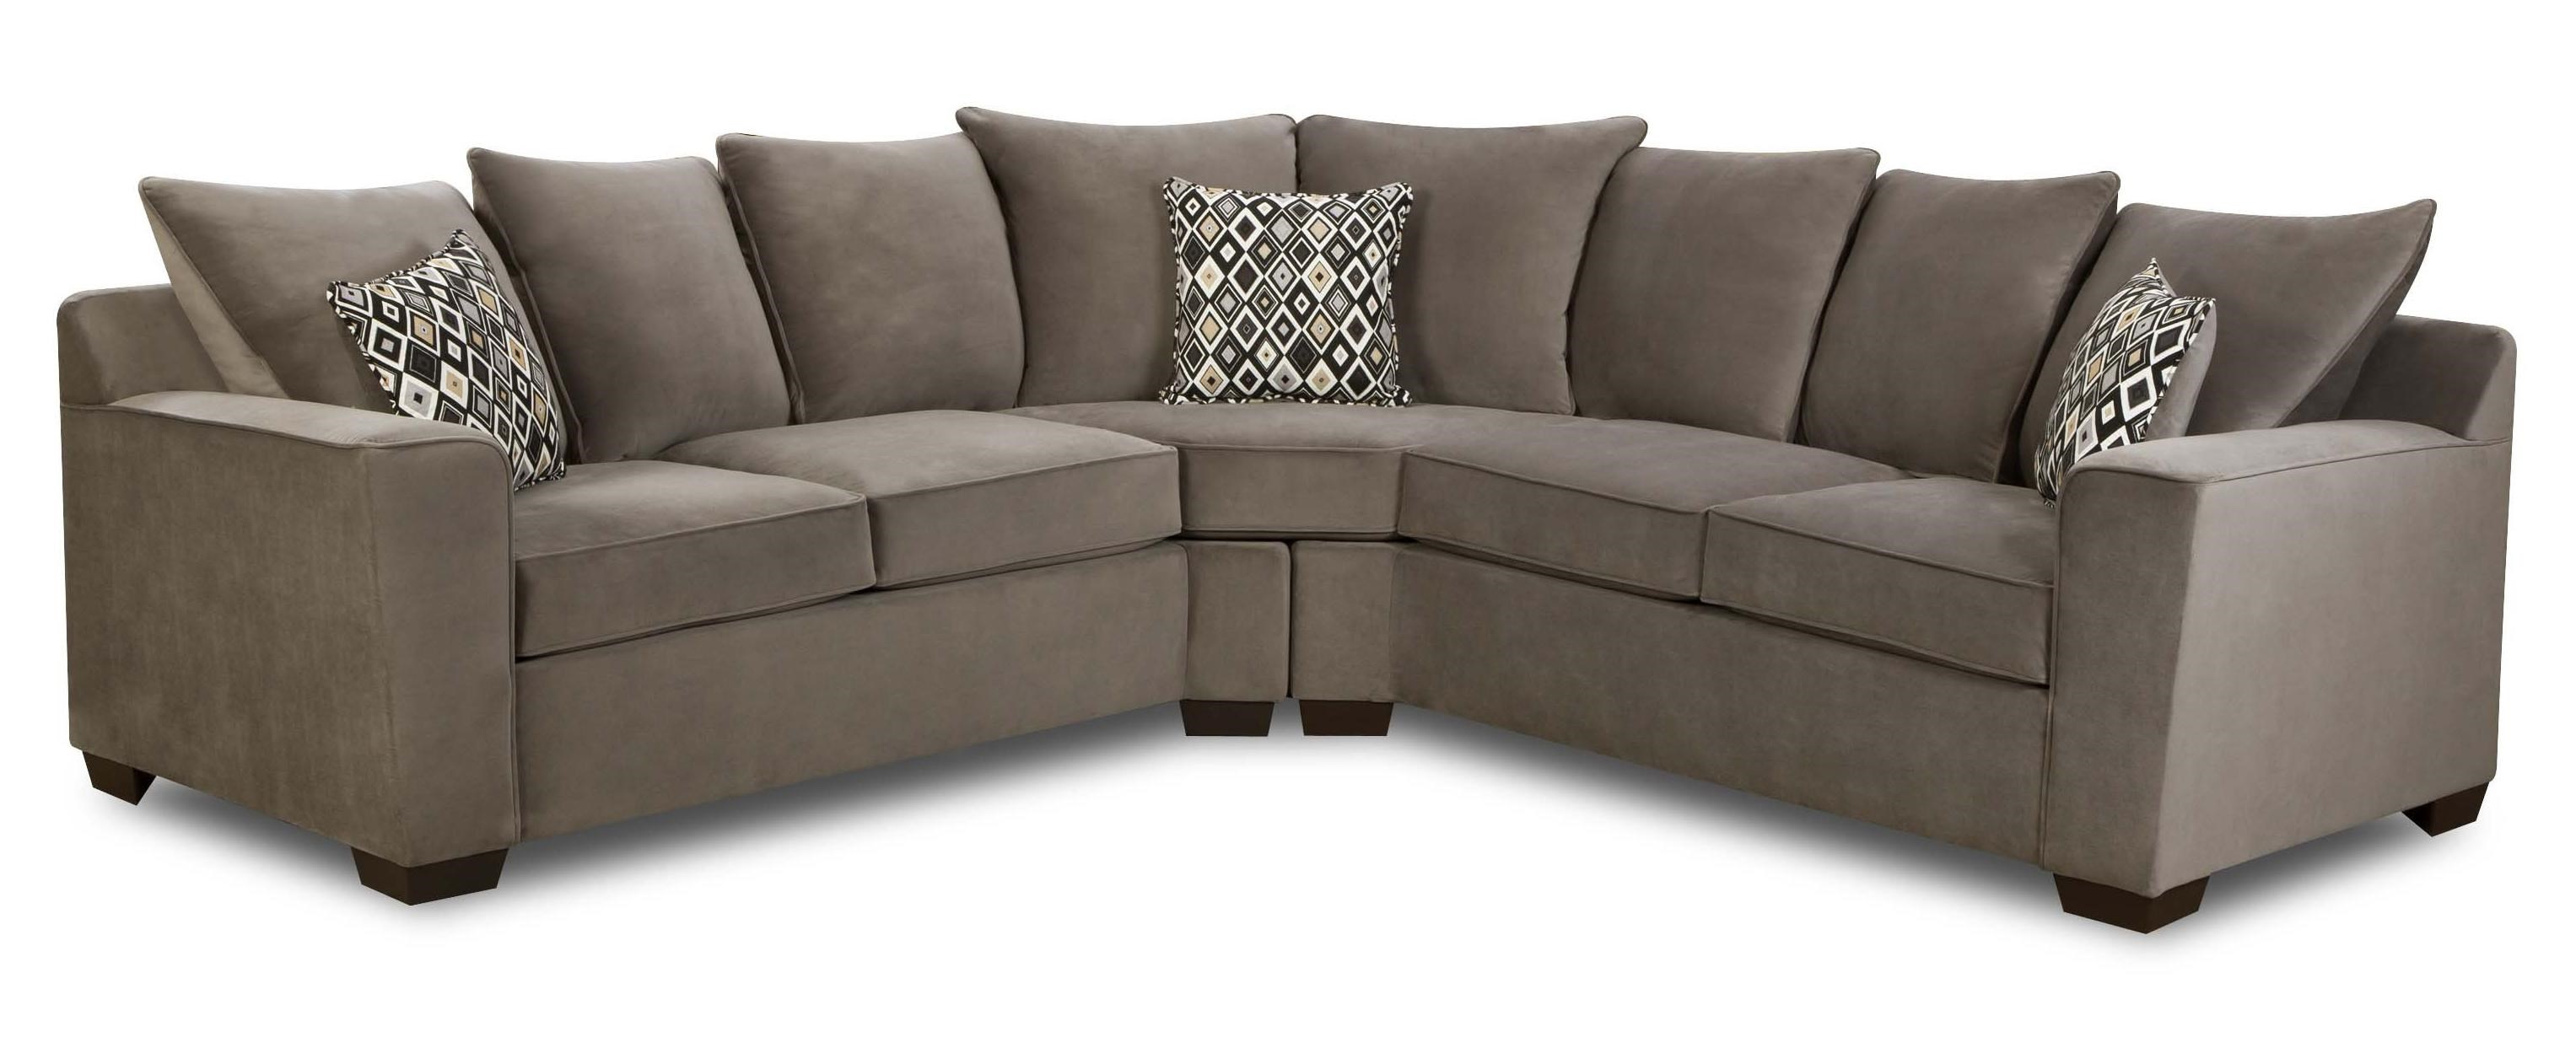 United Furniture Industries 9070Transitional 2 Piece Sectional Sofa ...